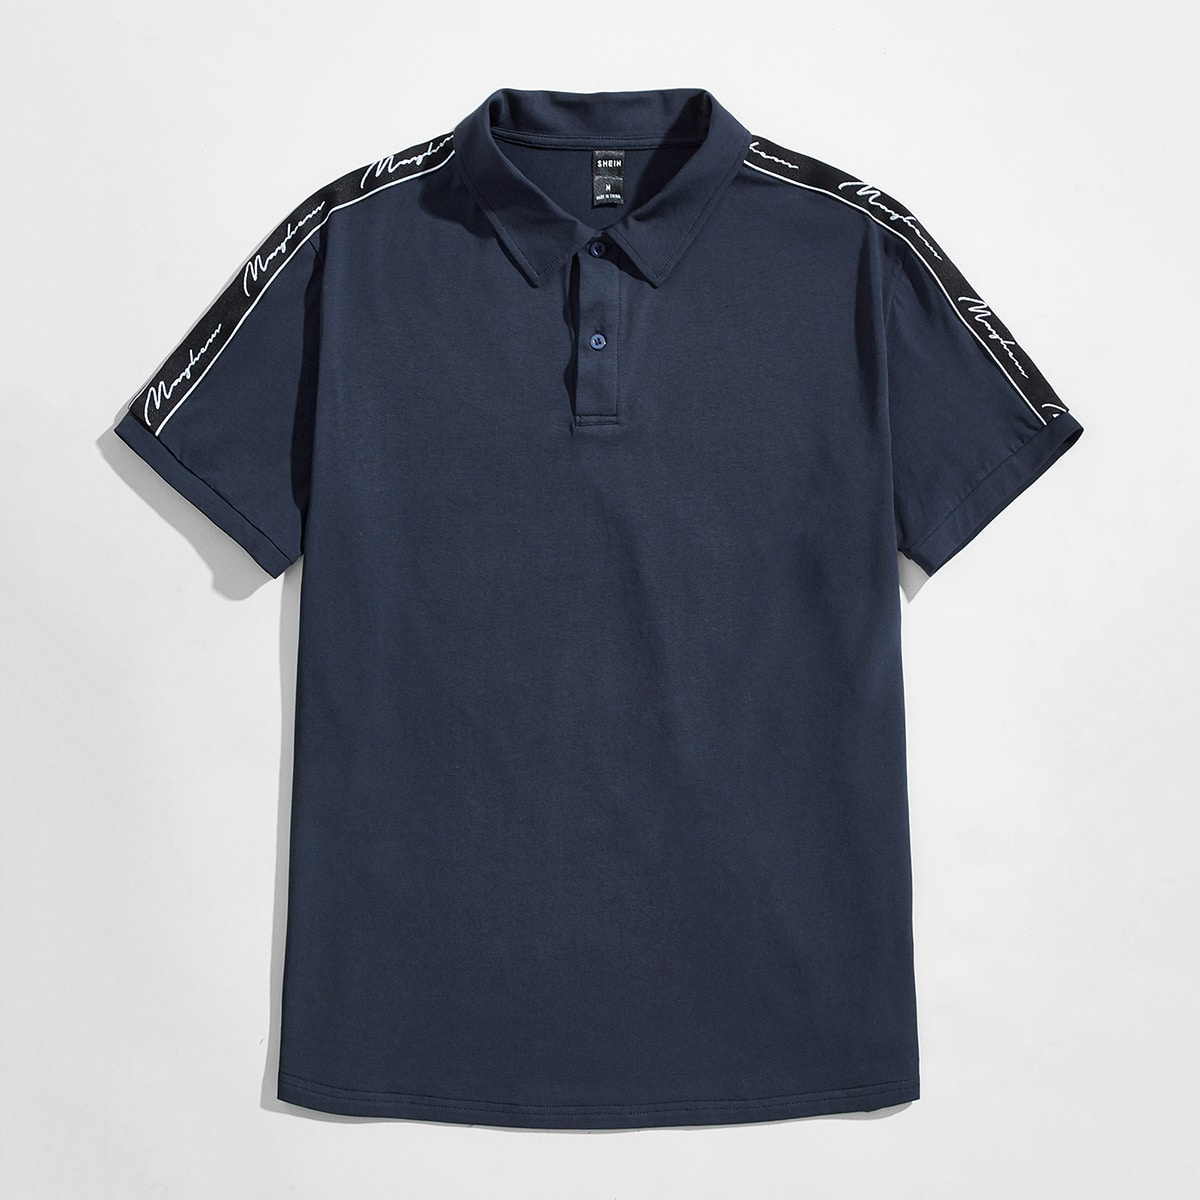 Men Letter Taped Polo Shirt, SHEIN  - buy with discount